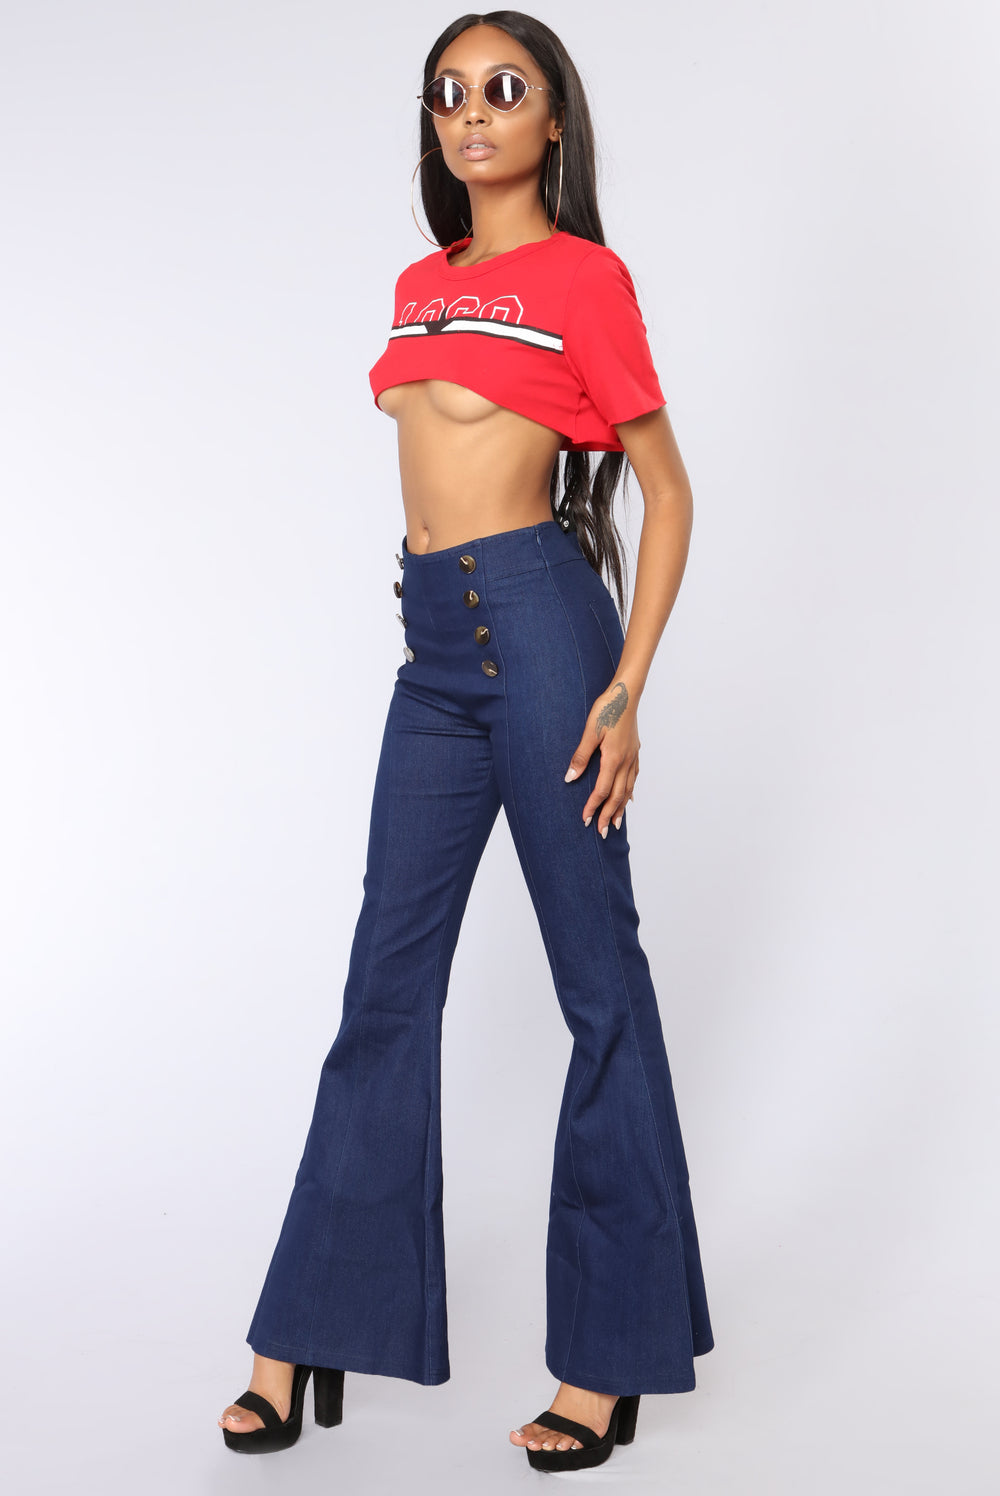 Year Of The Best Crop Top -  Red